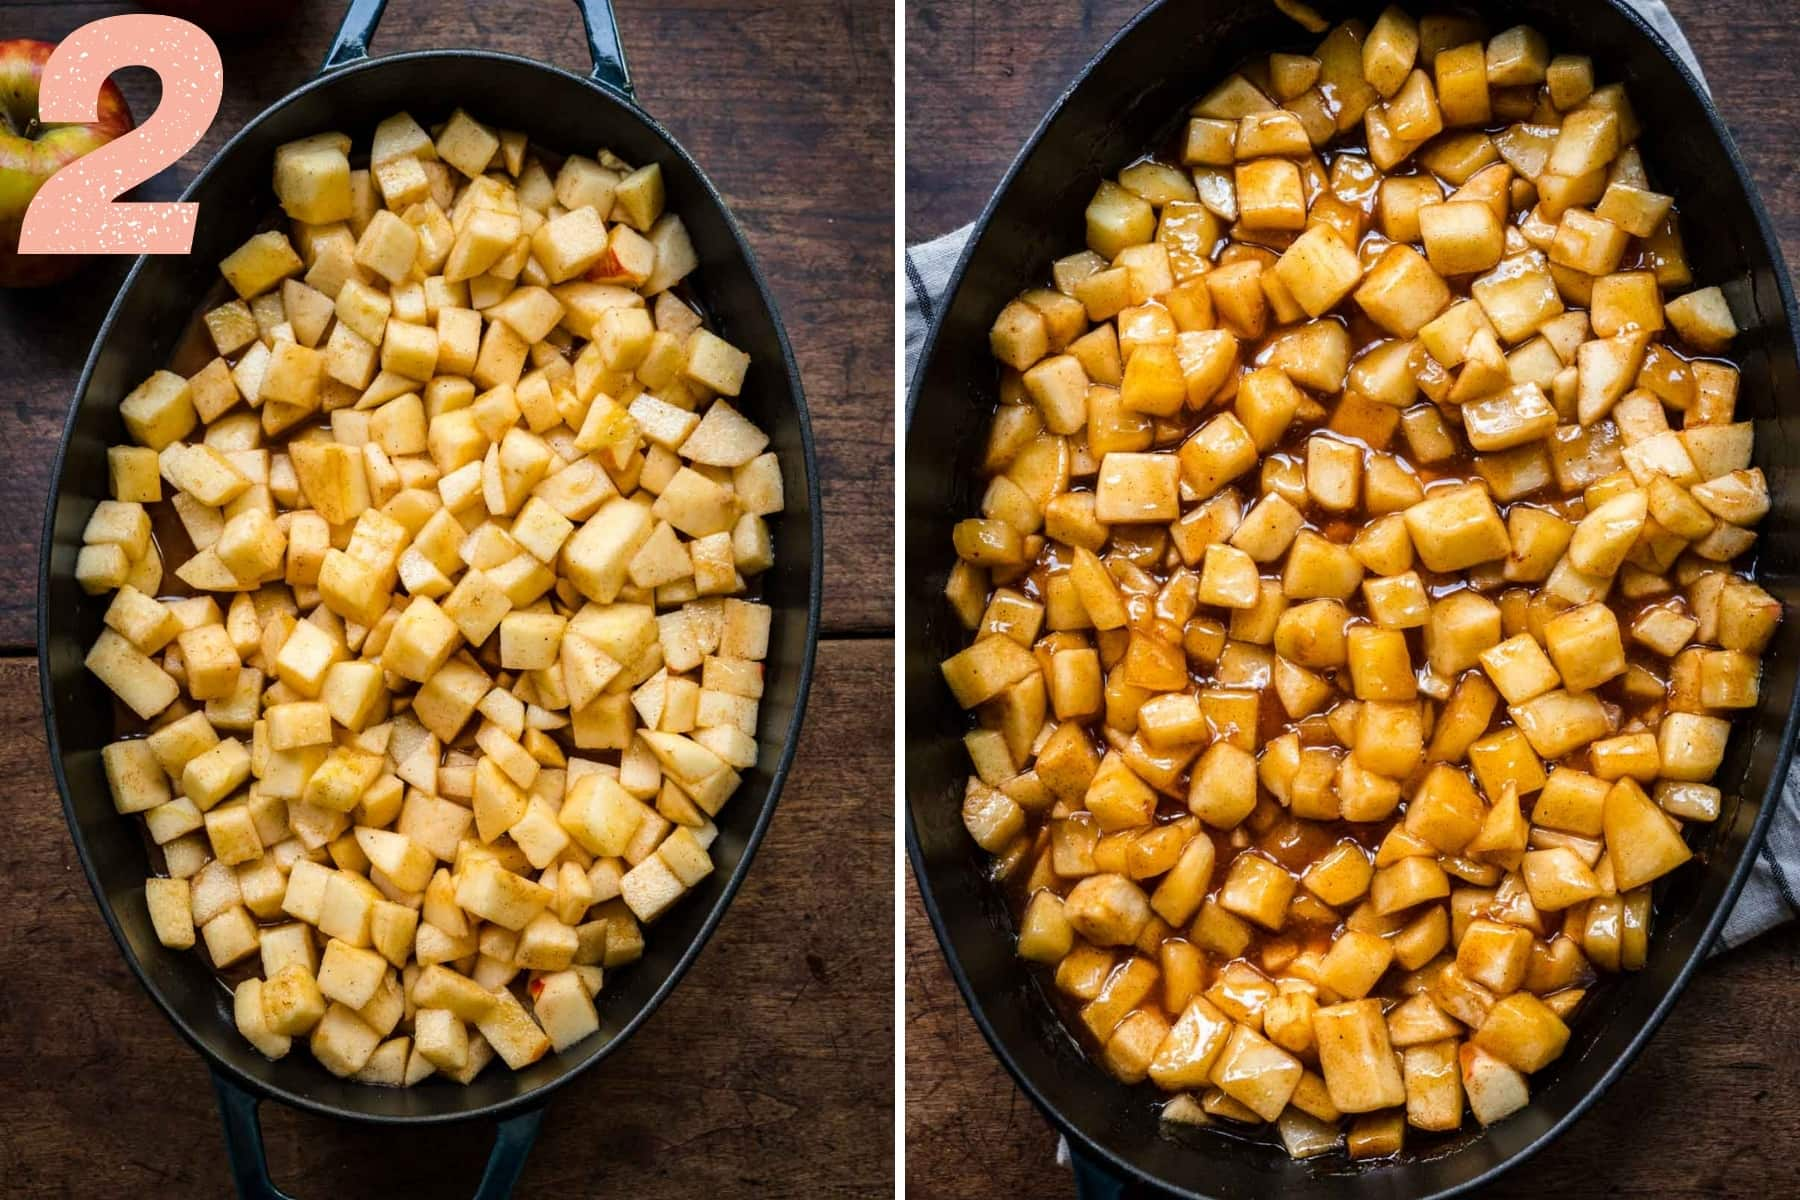 before and after baking cinnamon maple apple filling for crisp in baking dish.